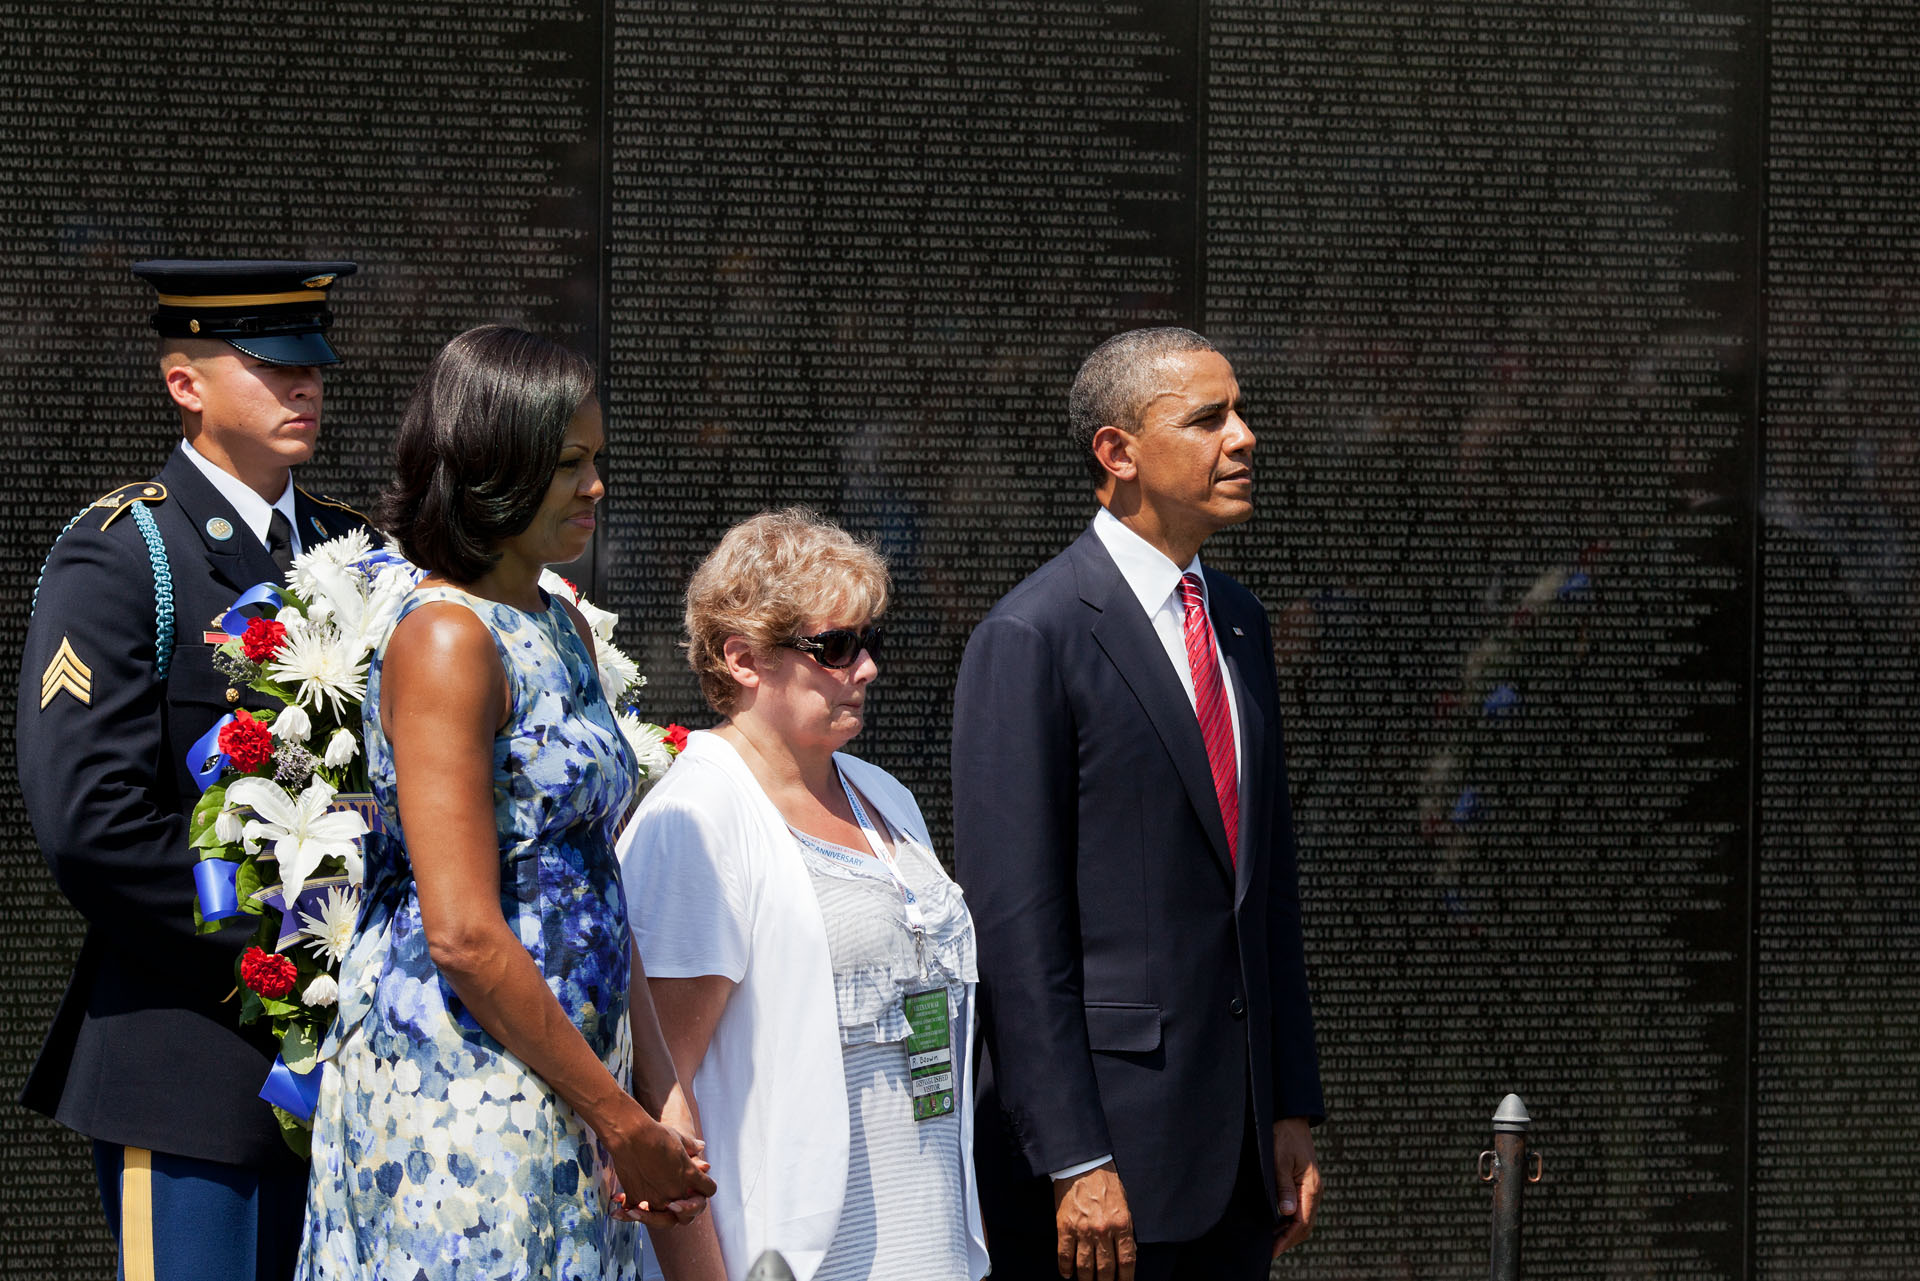 President Barack Obama and First Lady Michelle Obama at the Vietnam Veterans Memorial wall (May 28, 2012)